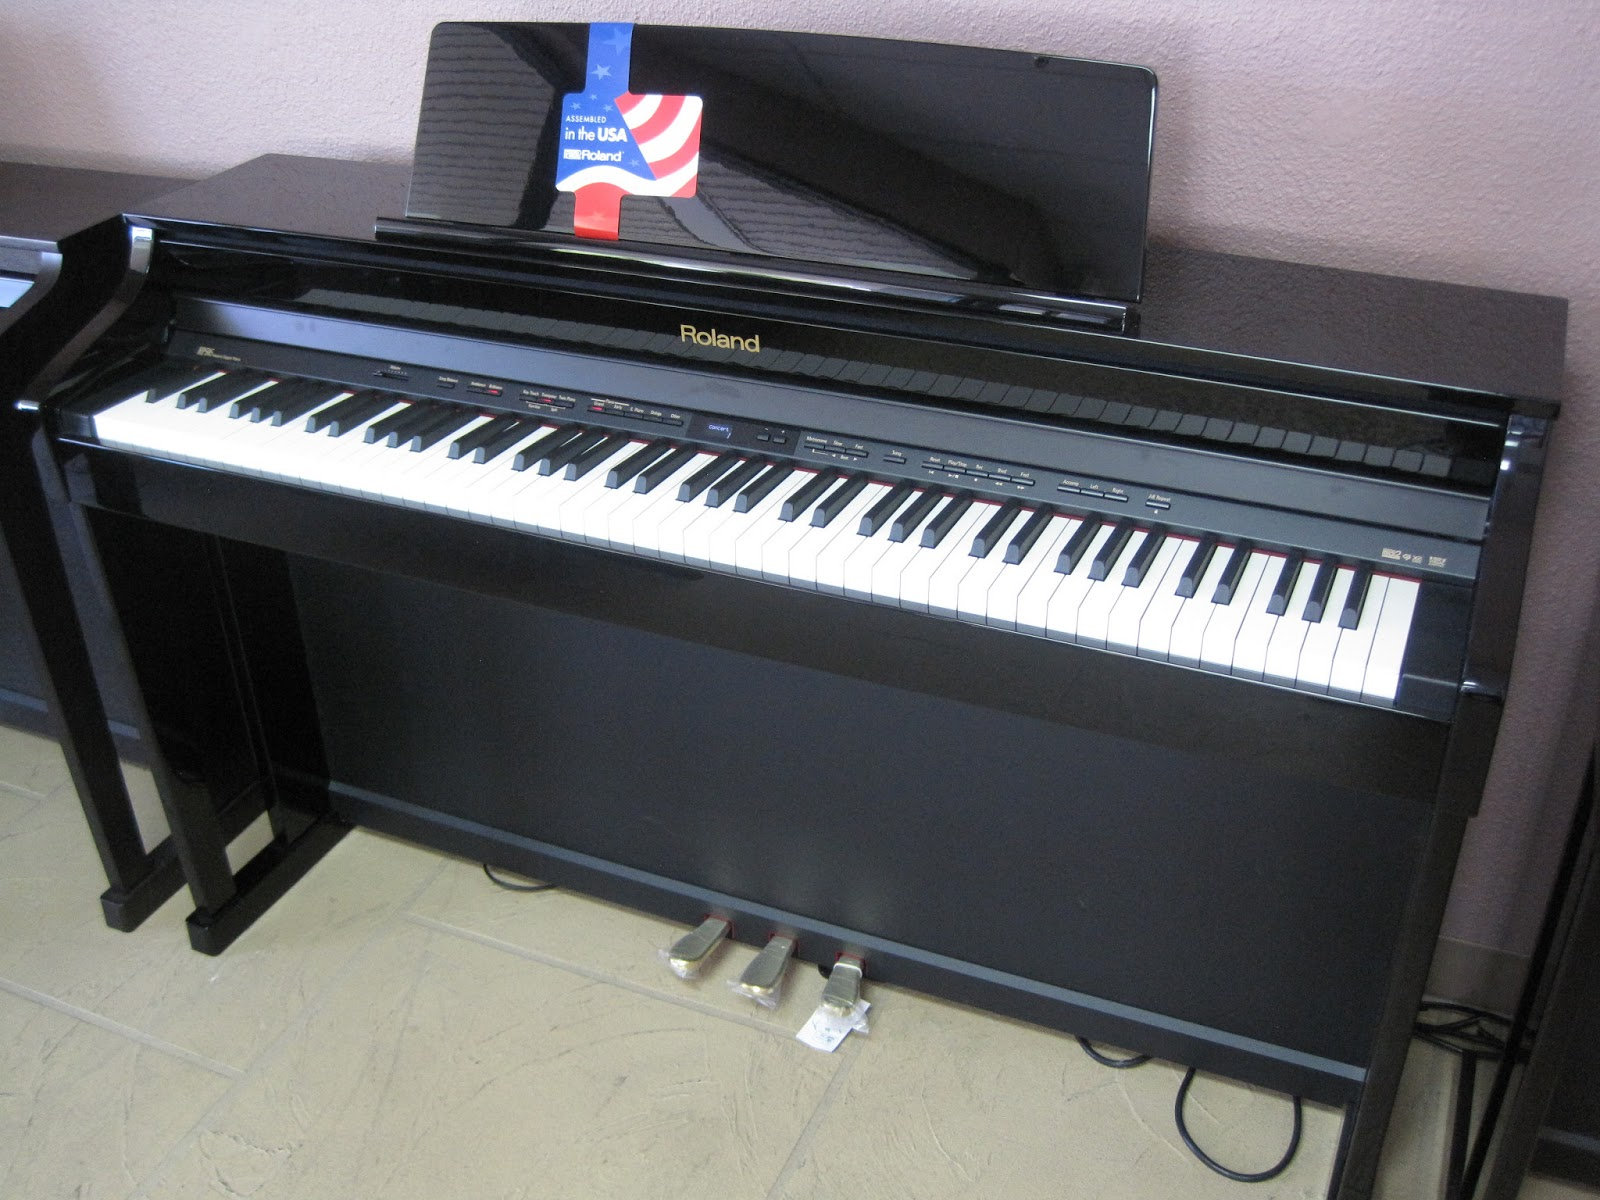 azpianonews review yamaha cvp601 vs roland hp506 digital piano completely different pianos. Black Bedroom Furniture Sets. Home Design Ideas